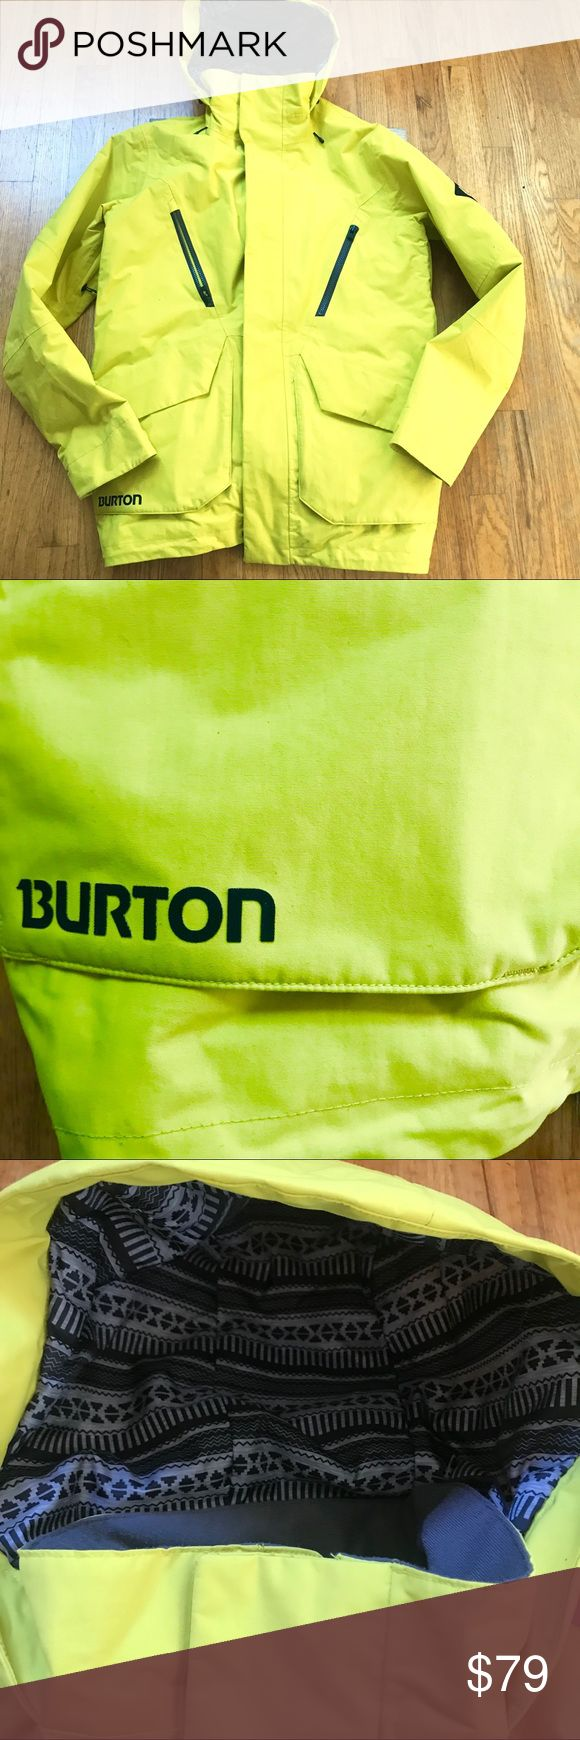 Yellow Burton Ski Snowboard snow jacket men's S Bright yellow Burton DryRide snow jacket. Men's size Small. Great condition - only worn a couple of times. A few small marks on front and cuffs (see photos) that will likely wash out. Powder skirt, clear ID pocket, lots of pockets! Burton Jackets & Coats Ski & Snowboard